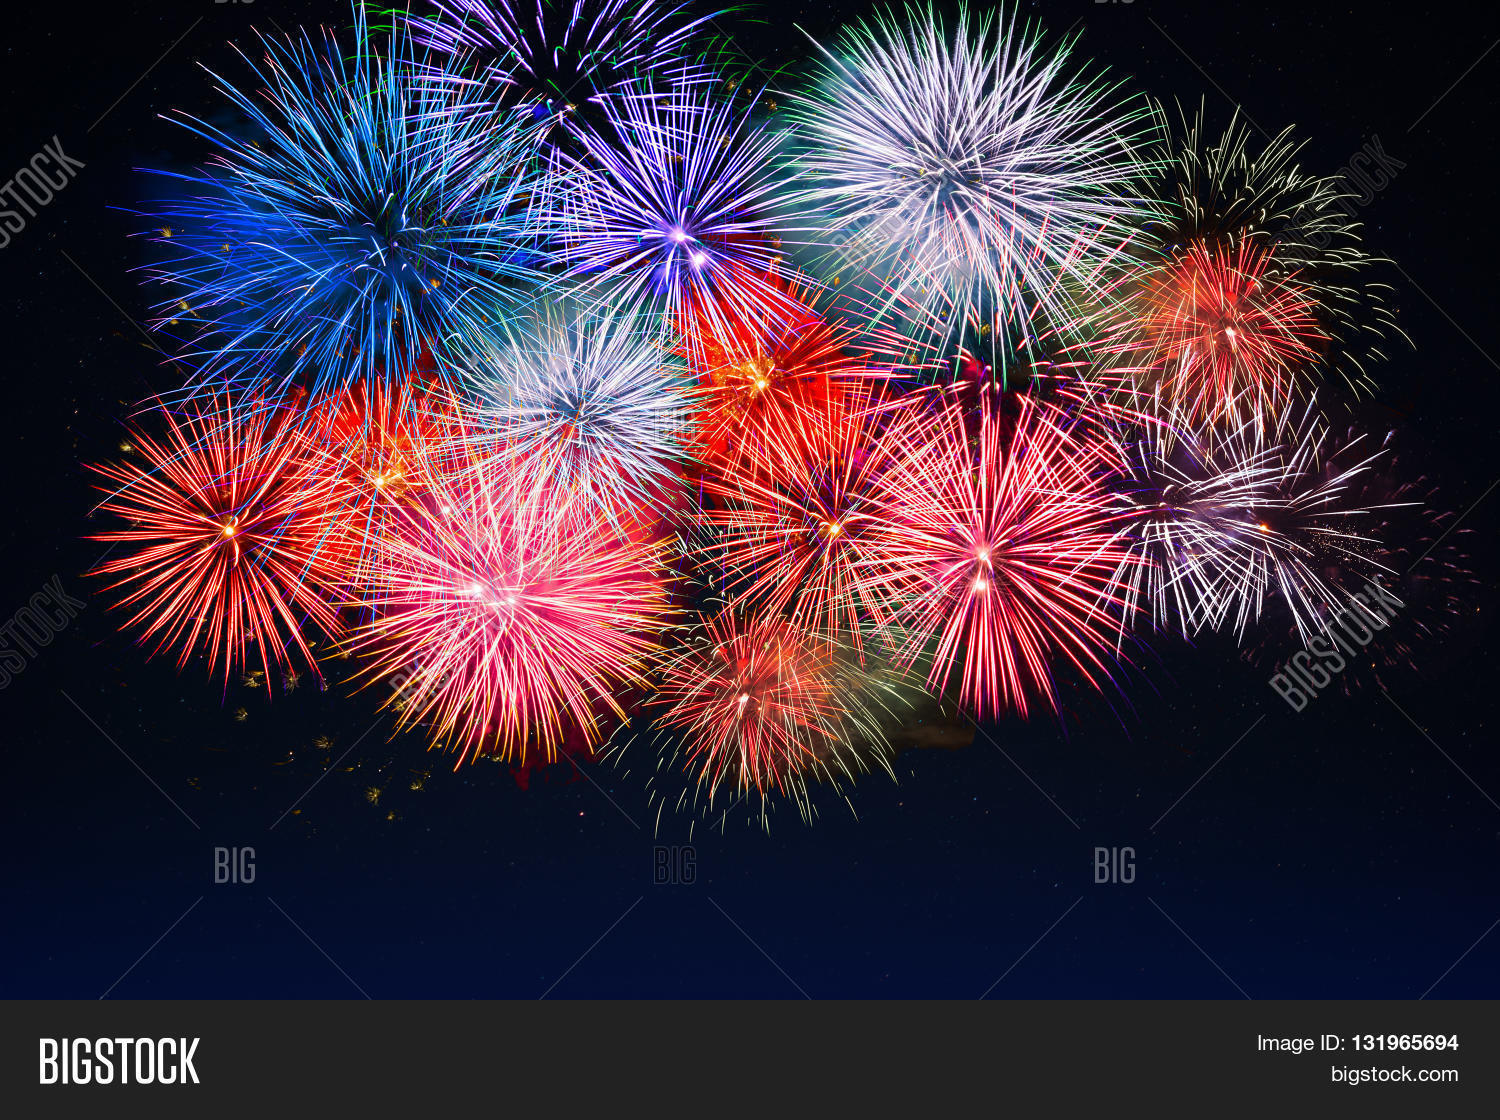 Wallpaper Salute Sky Holiday Colorful 3376x4220: Amazing Red Golden Blue Fireworks. Celebration Beautiful